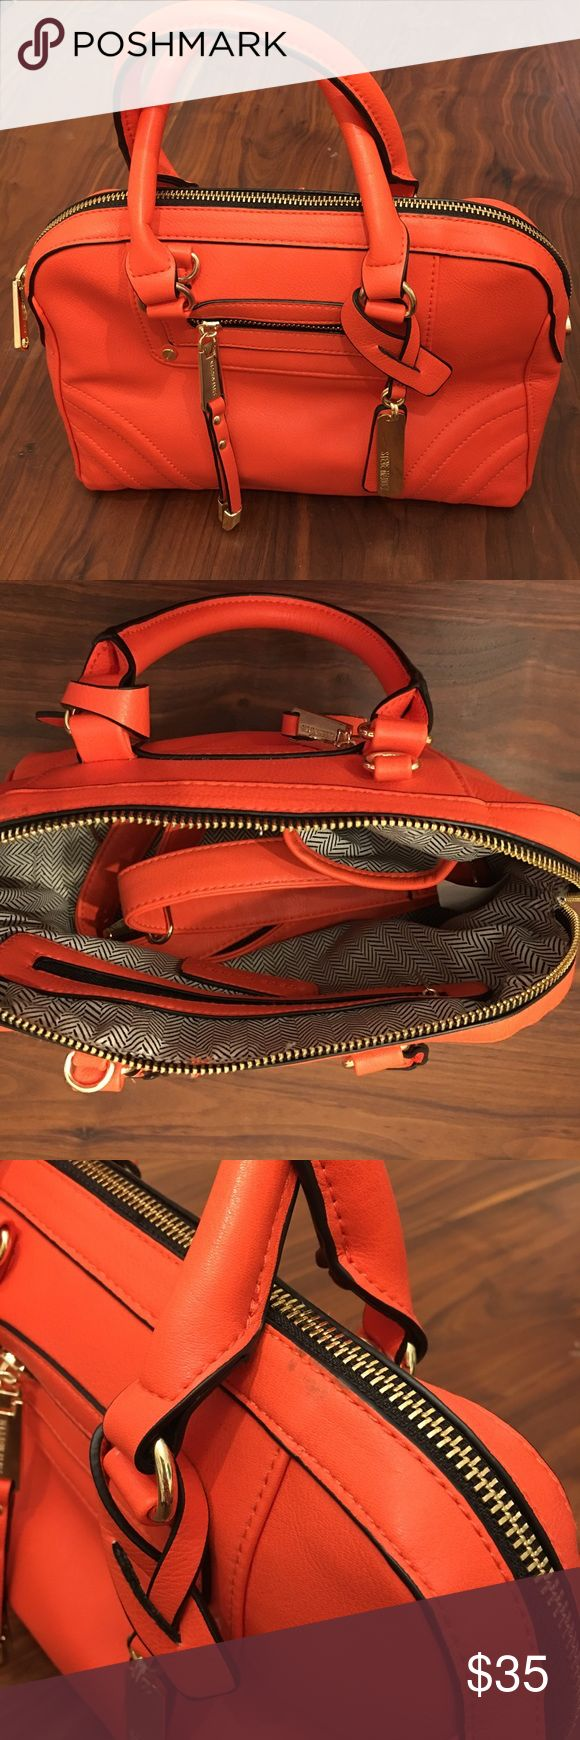 Steve Madden Bright Orange Hand Bag I have a bright orange handbag by Steve Madden for sale, make an offer! It is clean inside and only worn once. It has a black scuff on the back that may or may not come out, I haven't tried. Didn't bother me too much and was perfect colored for Giants games. I have a Dooney SF Giants bag now so I don't need this one! Comes with an adjustable handle. Steve Madden Bags Satchels